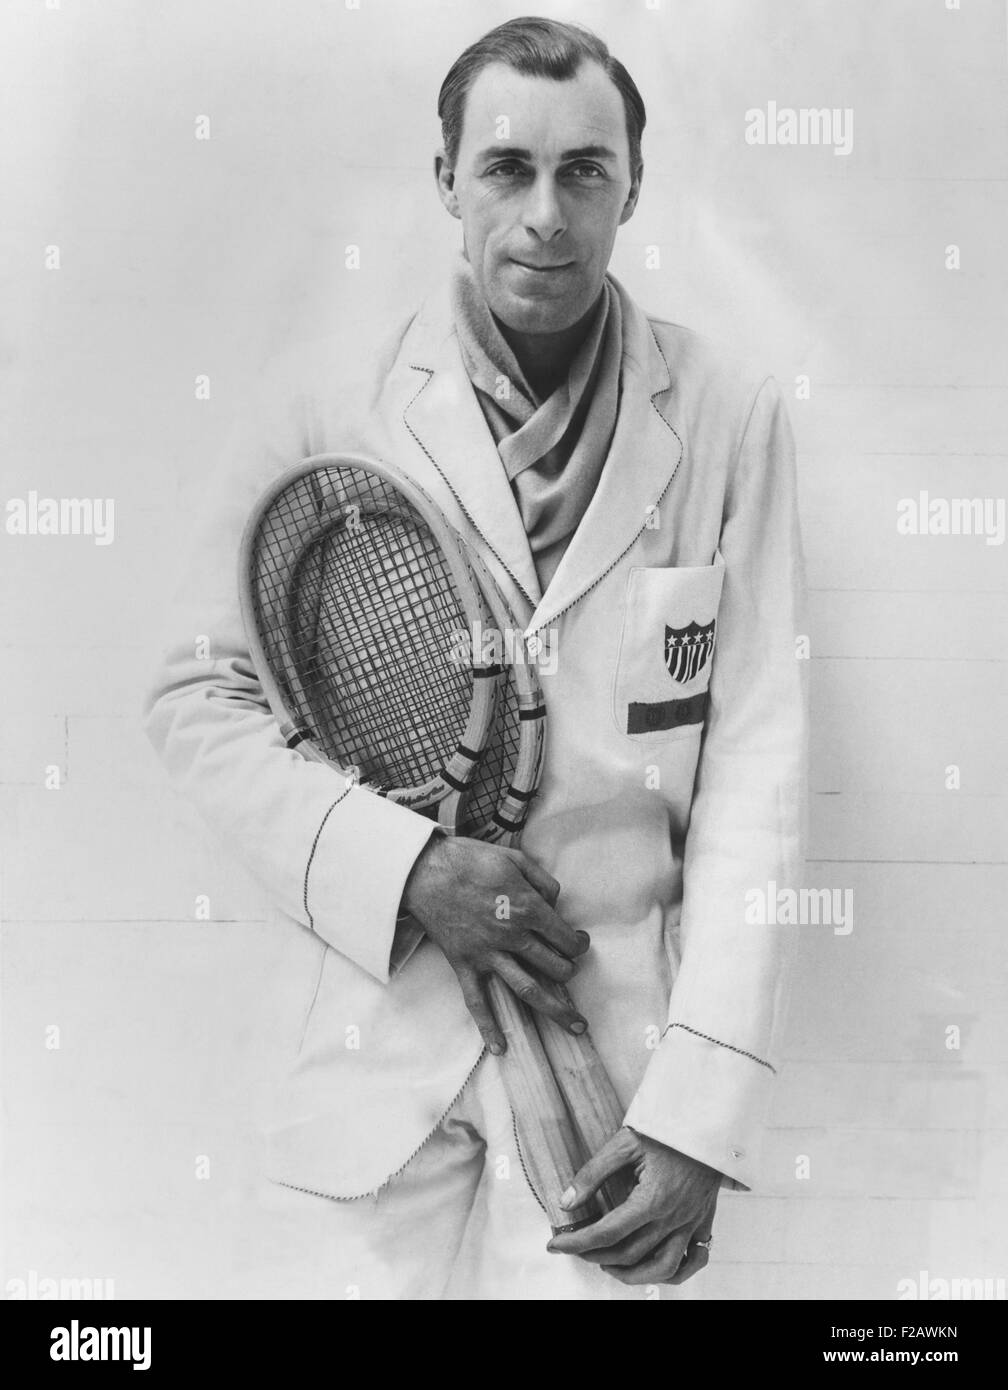 Bill Tilden after his first match since reinstatement as an amateur by the ALTA. At Heights Casino in Brooklyn, - Stock Image